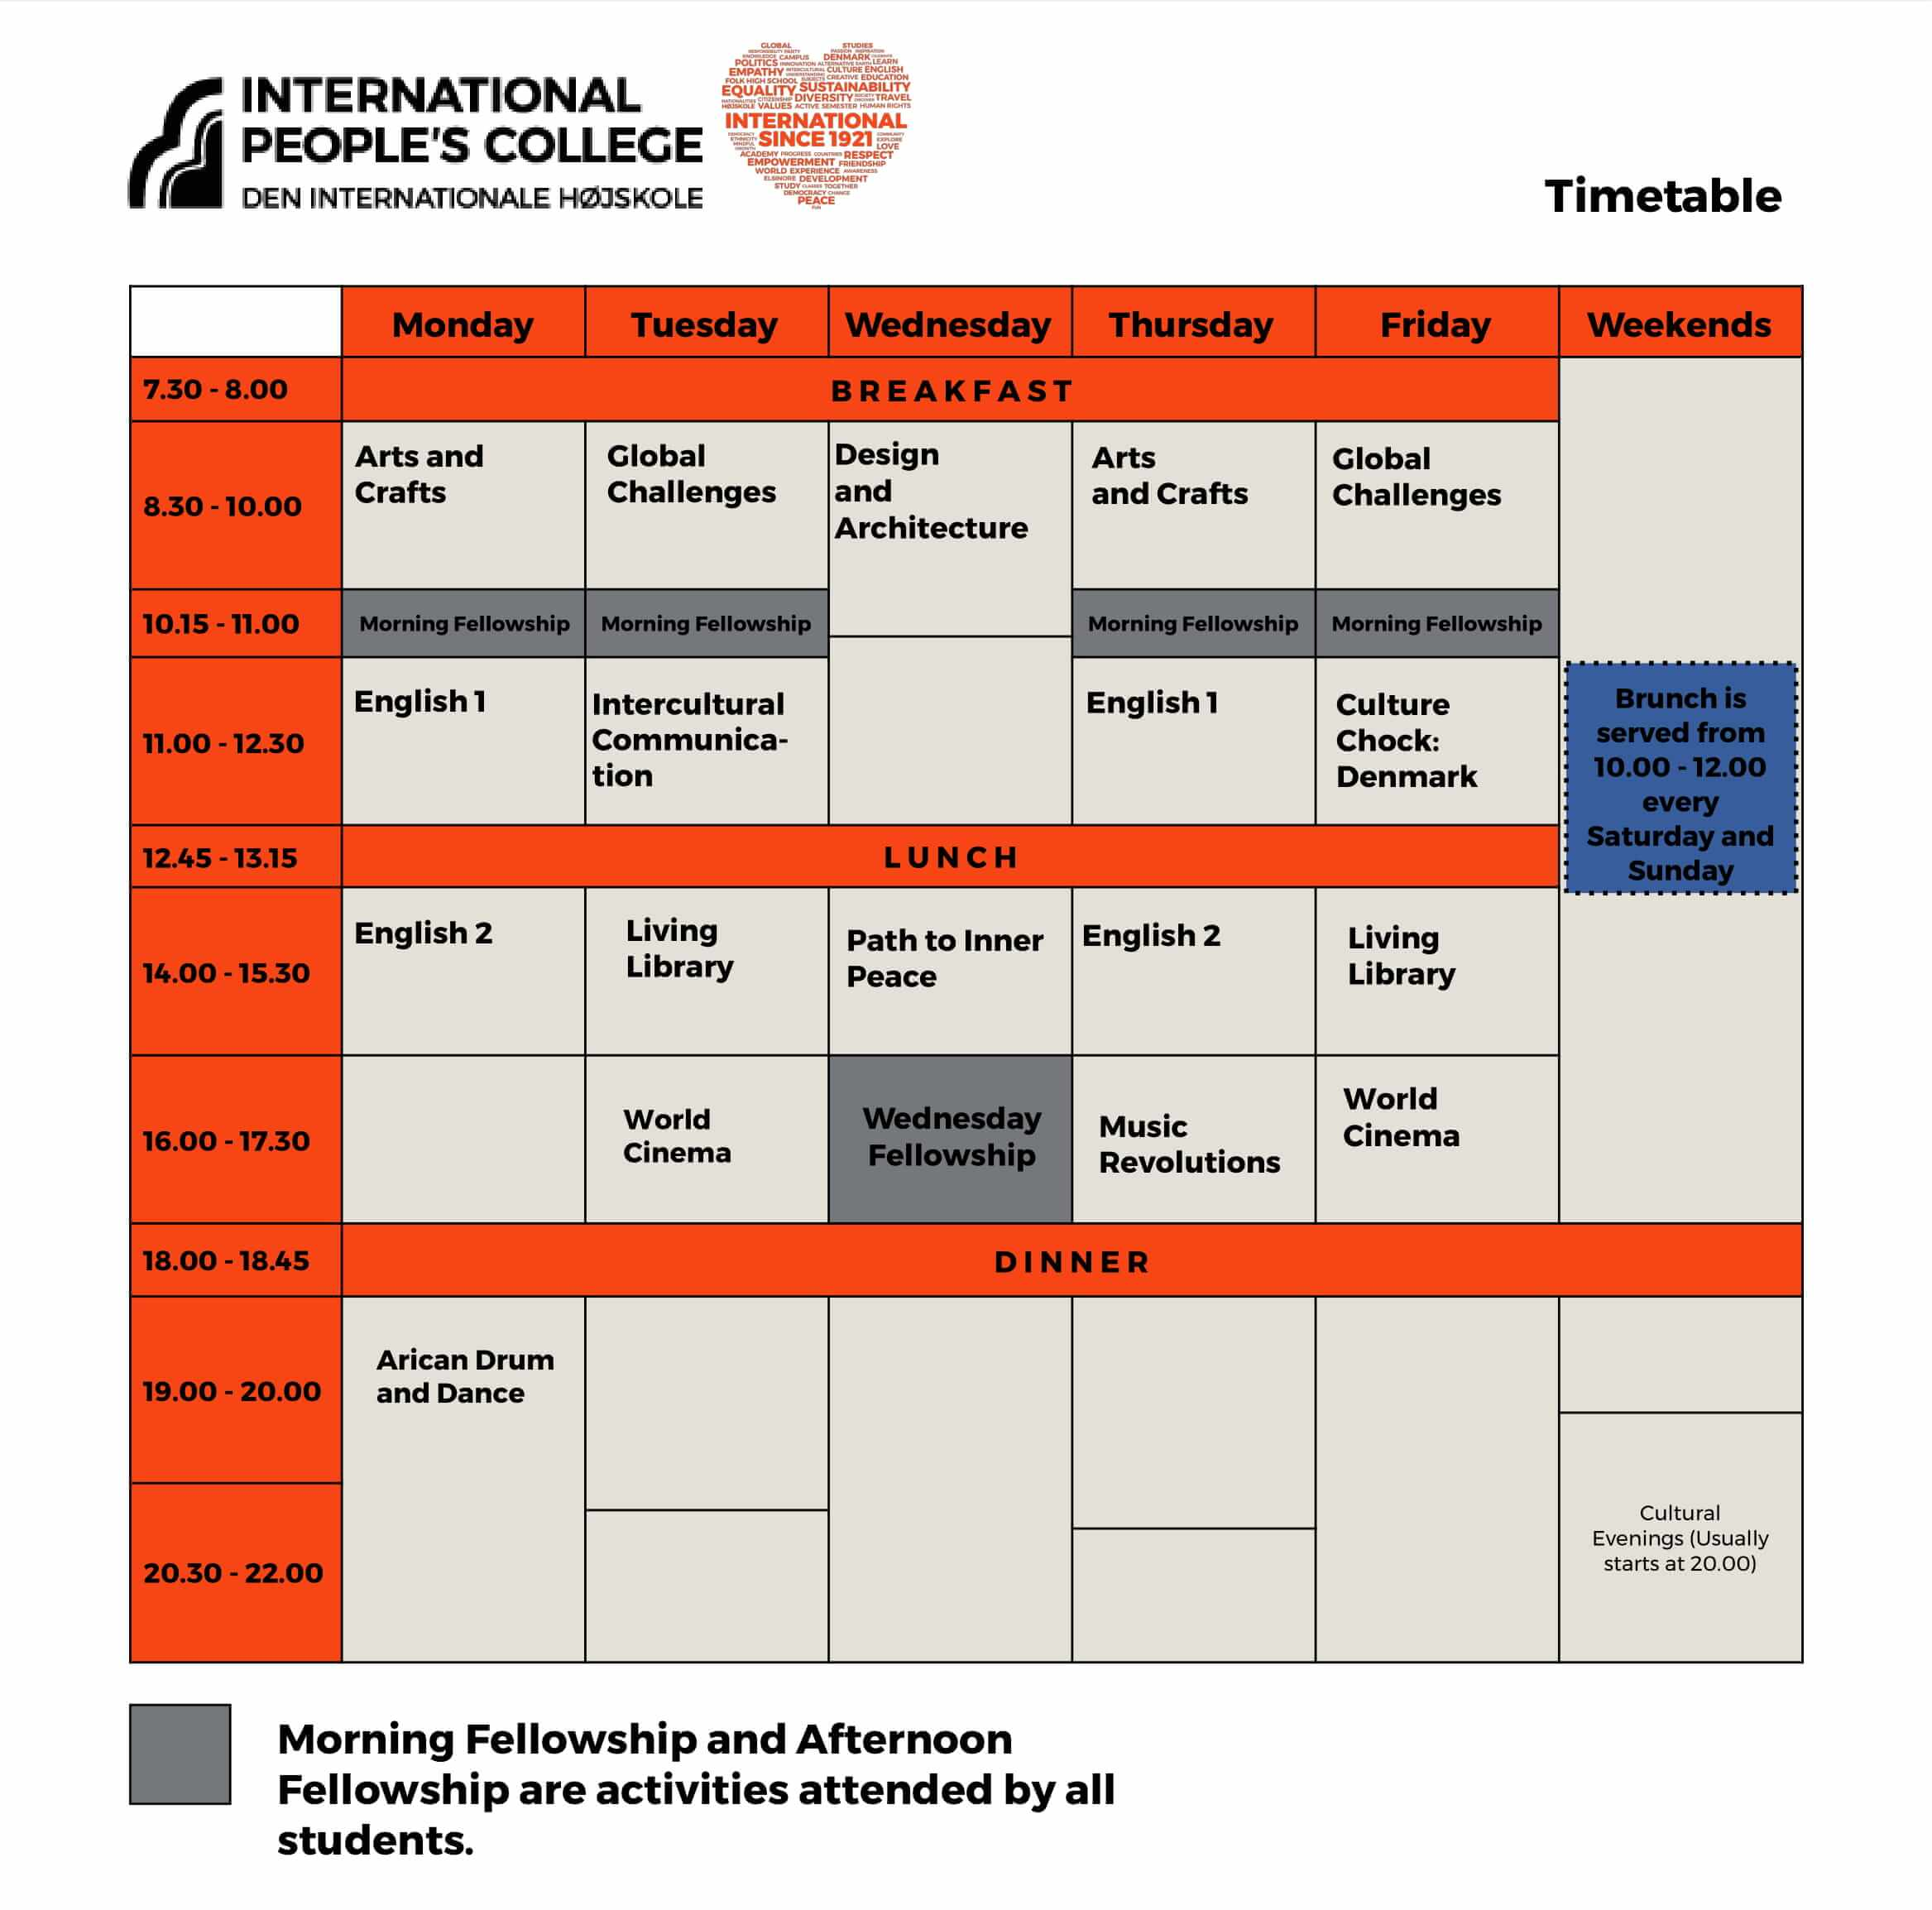 Folk High School Time Table at International People's College in Denmark - Amandeep